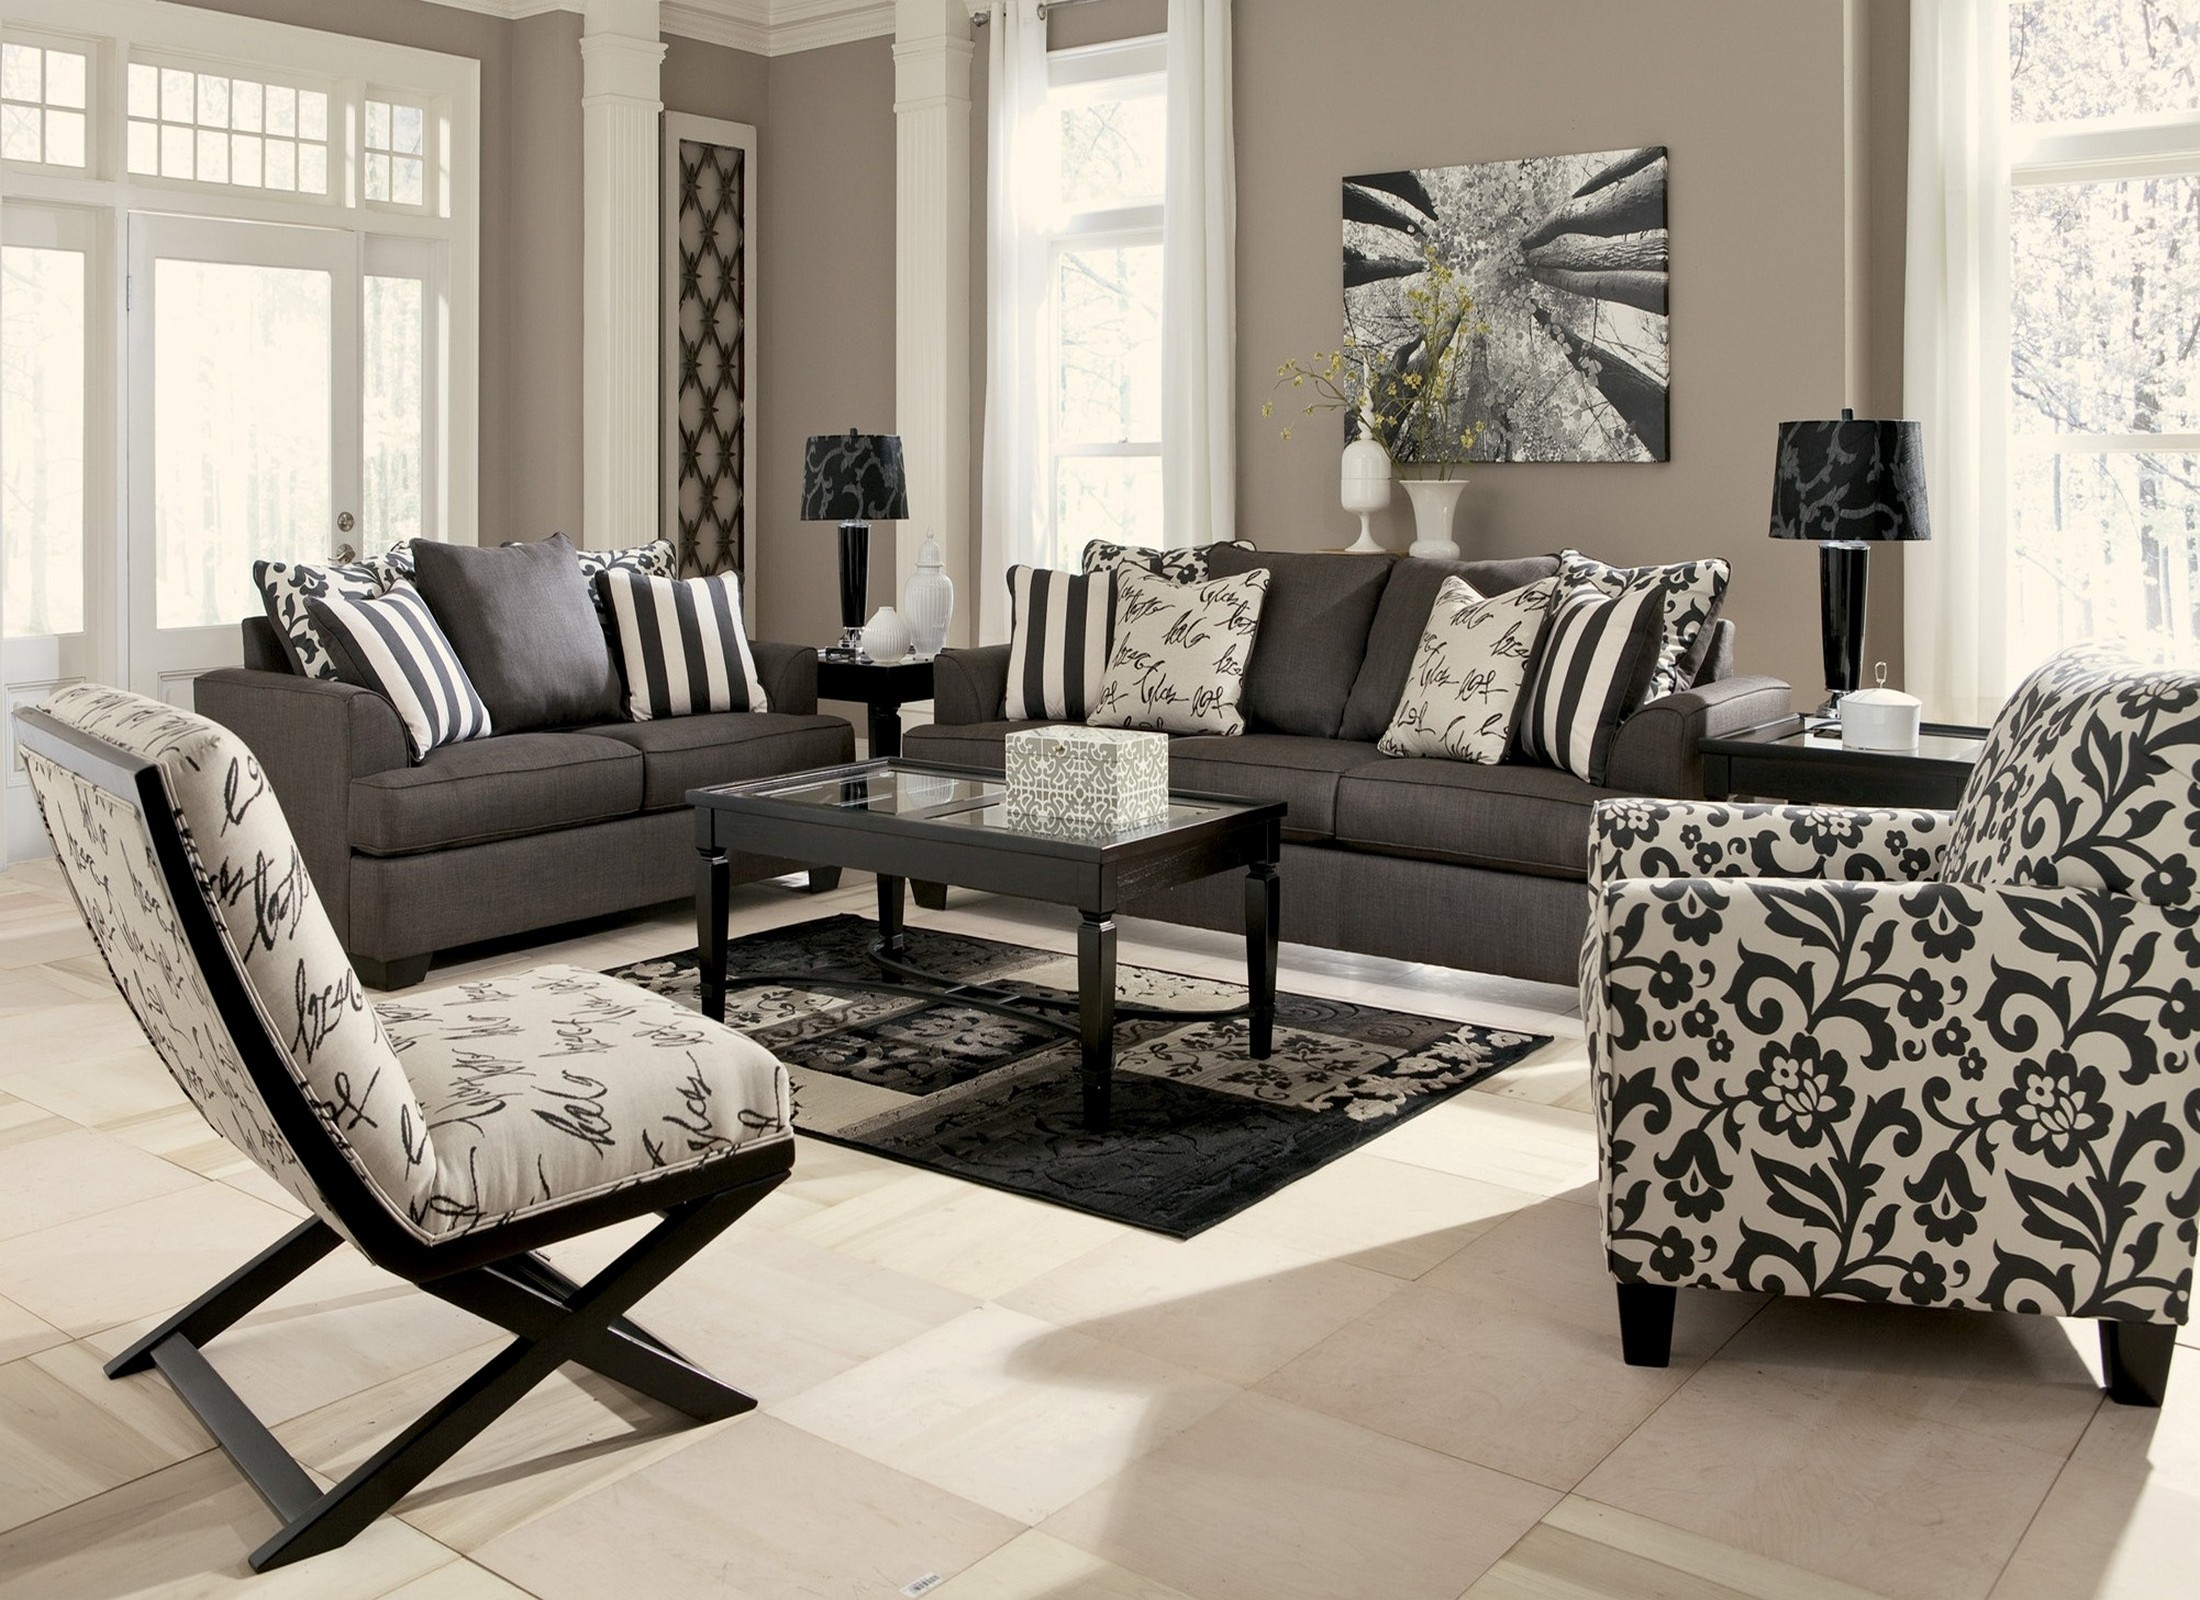 Levon Charcoal Living Room Set From Ashley 73403 Coleman Furniture pertaining to Living Room Sets